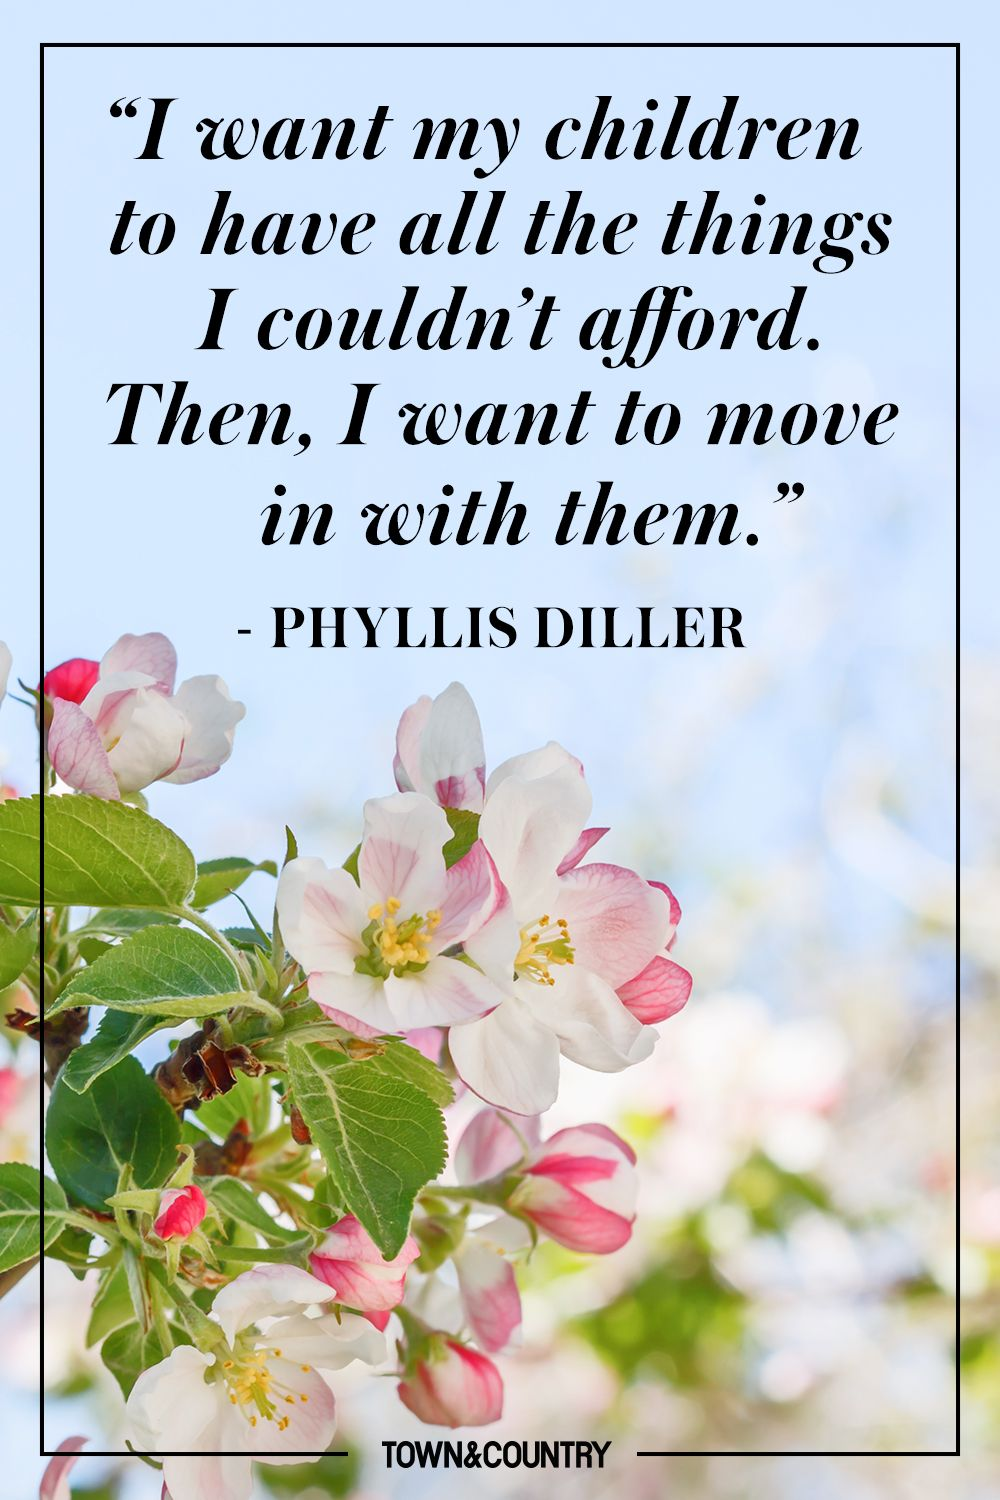 """""""I want my children to have all the things I couldn't afford. Then, I want to move in with them."""" - Phyllis Diller"""